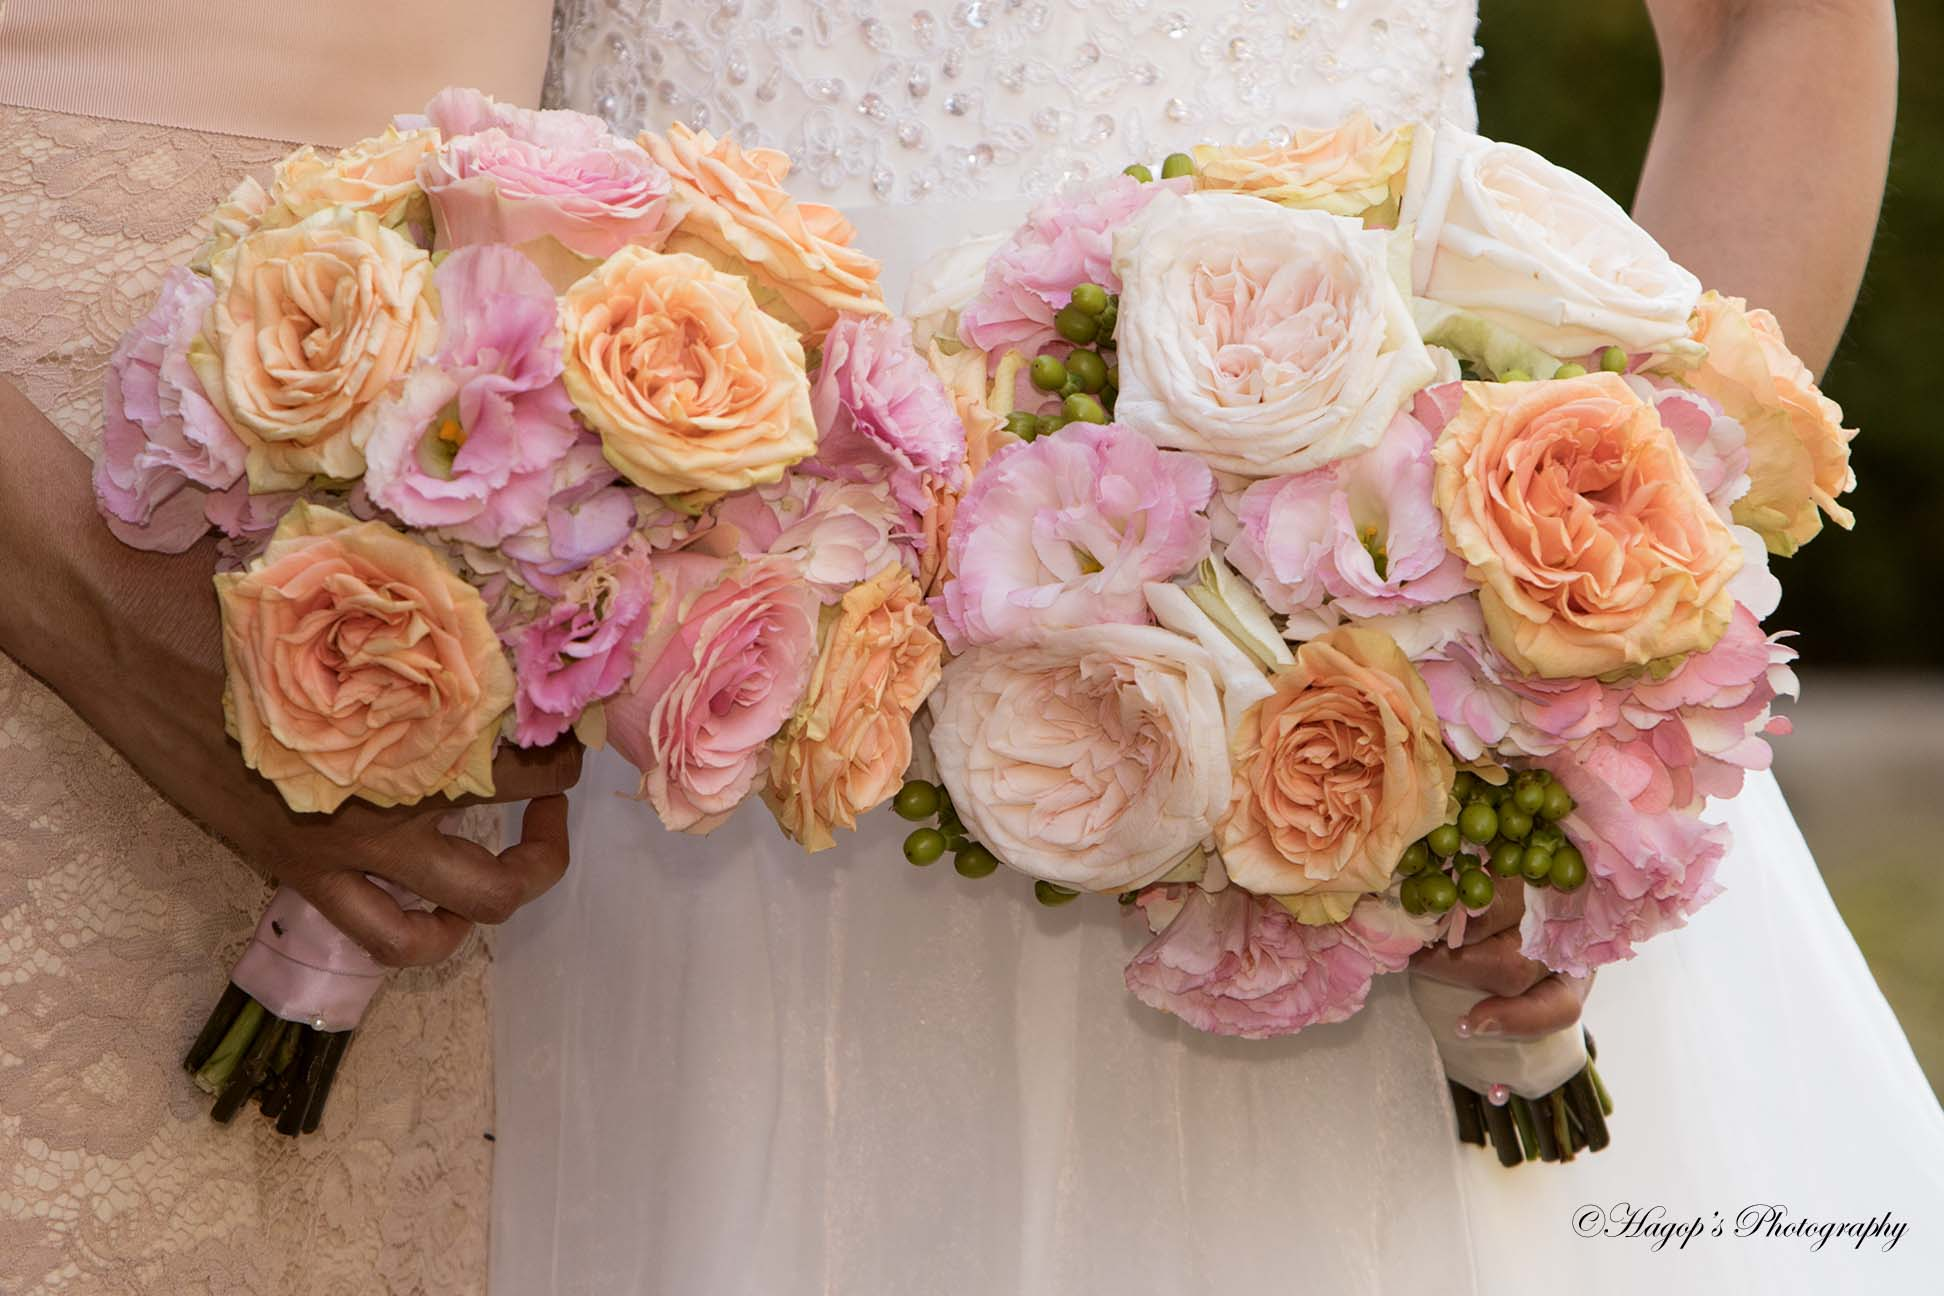 wedding photo of bouquets